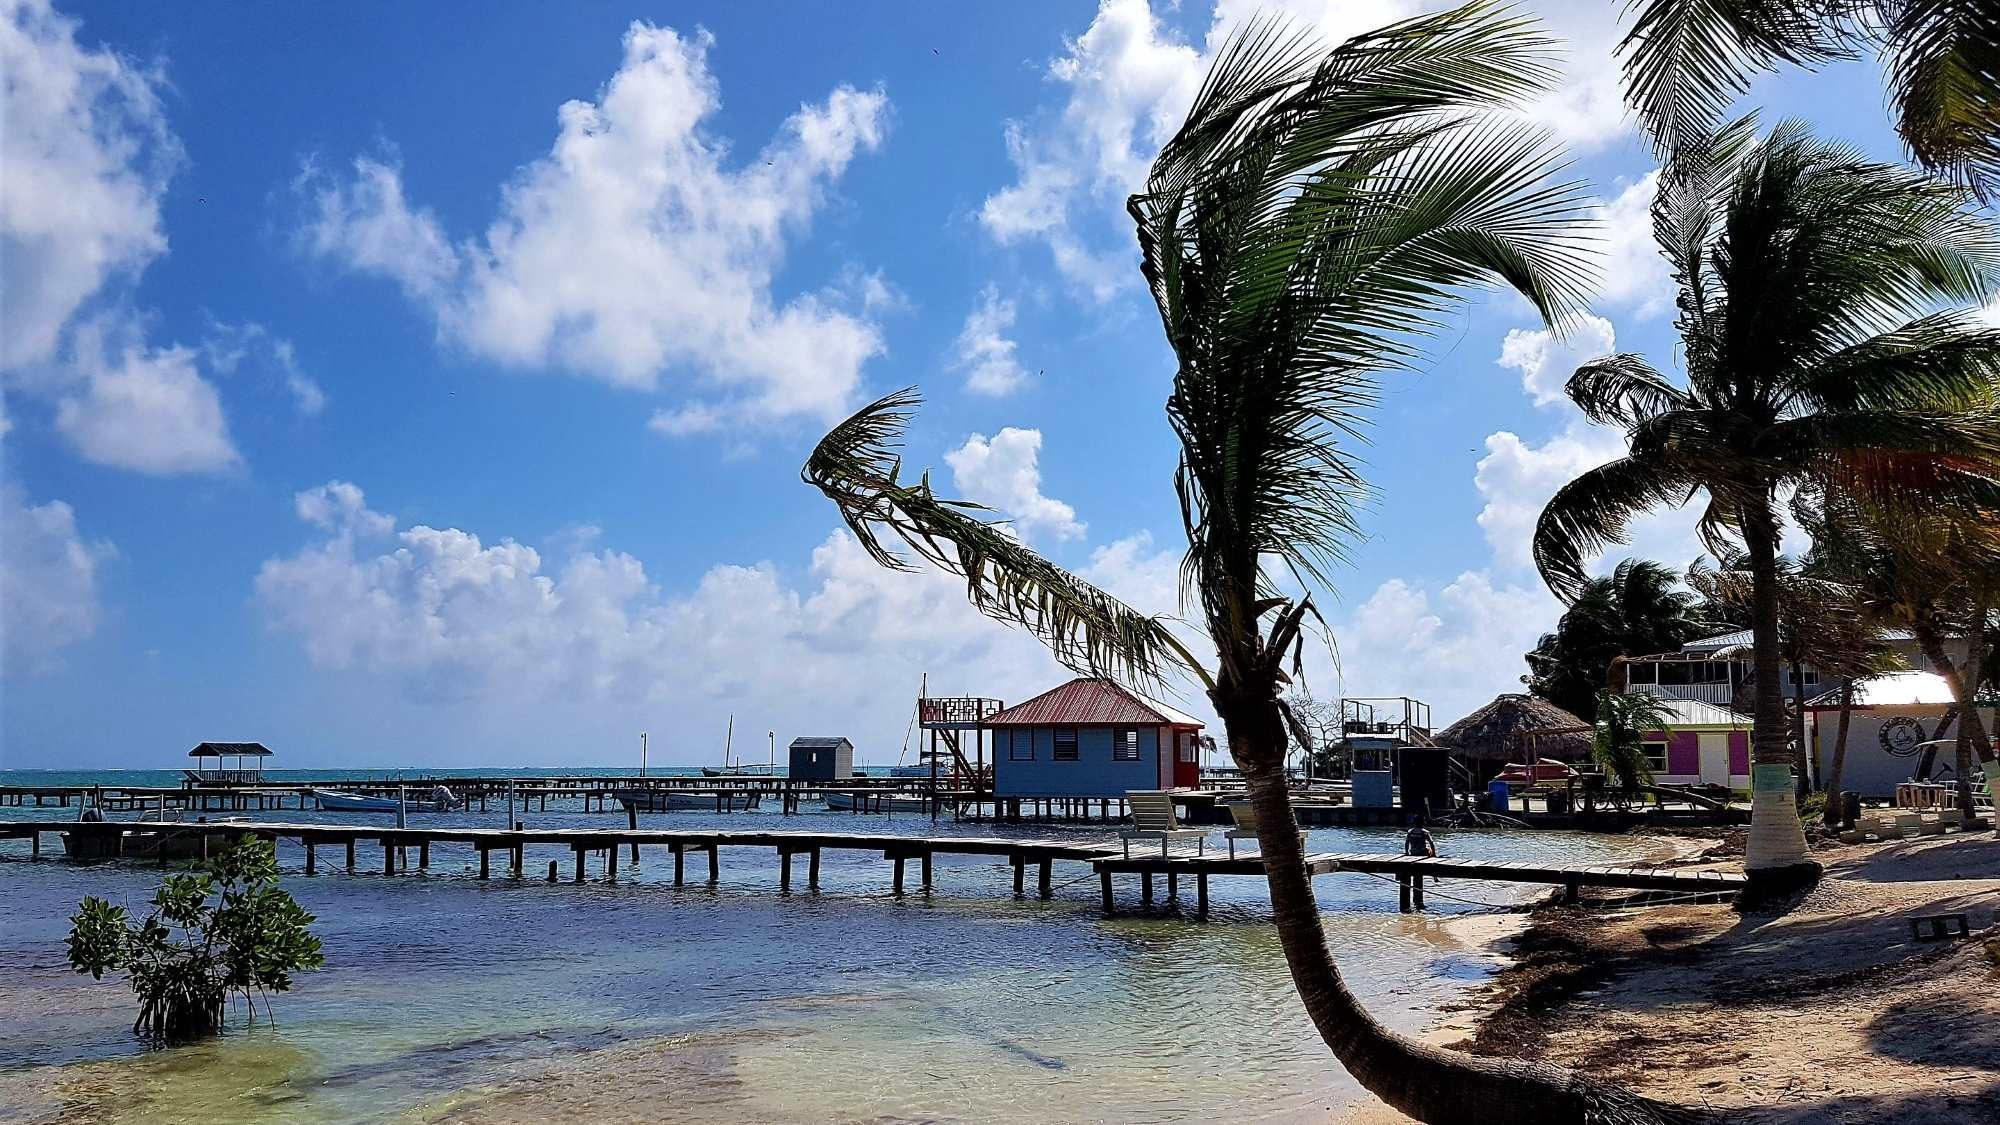 How to get from Caye Caulker Belize to Antigua Guatemala